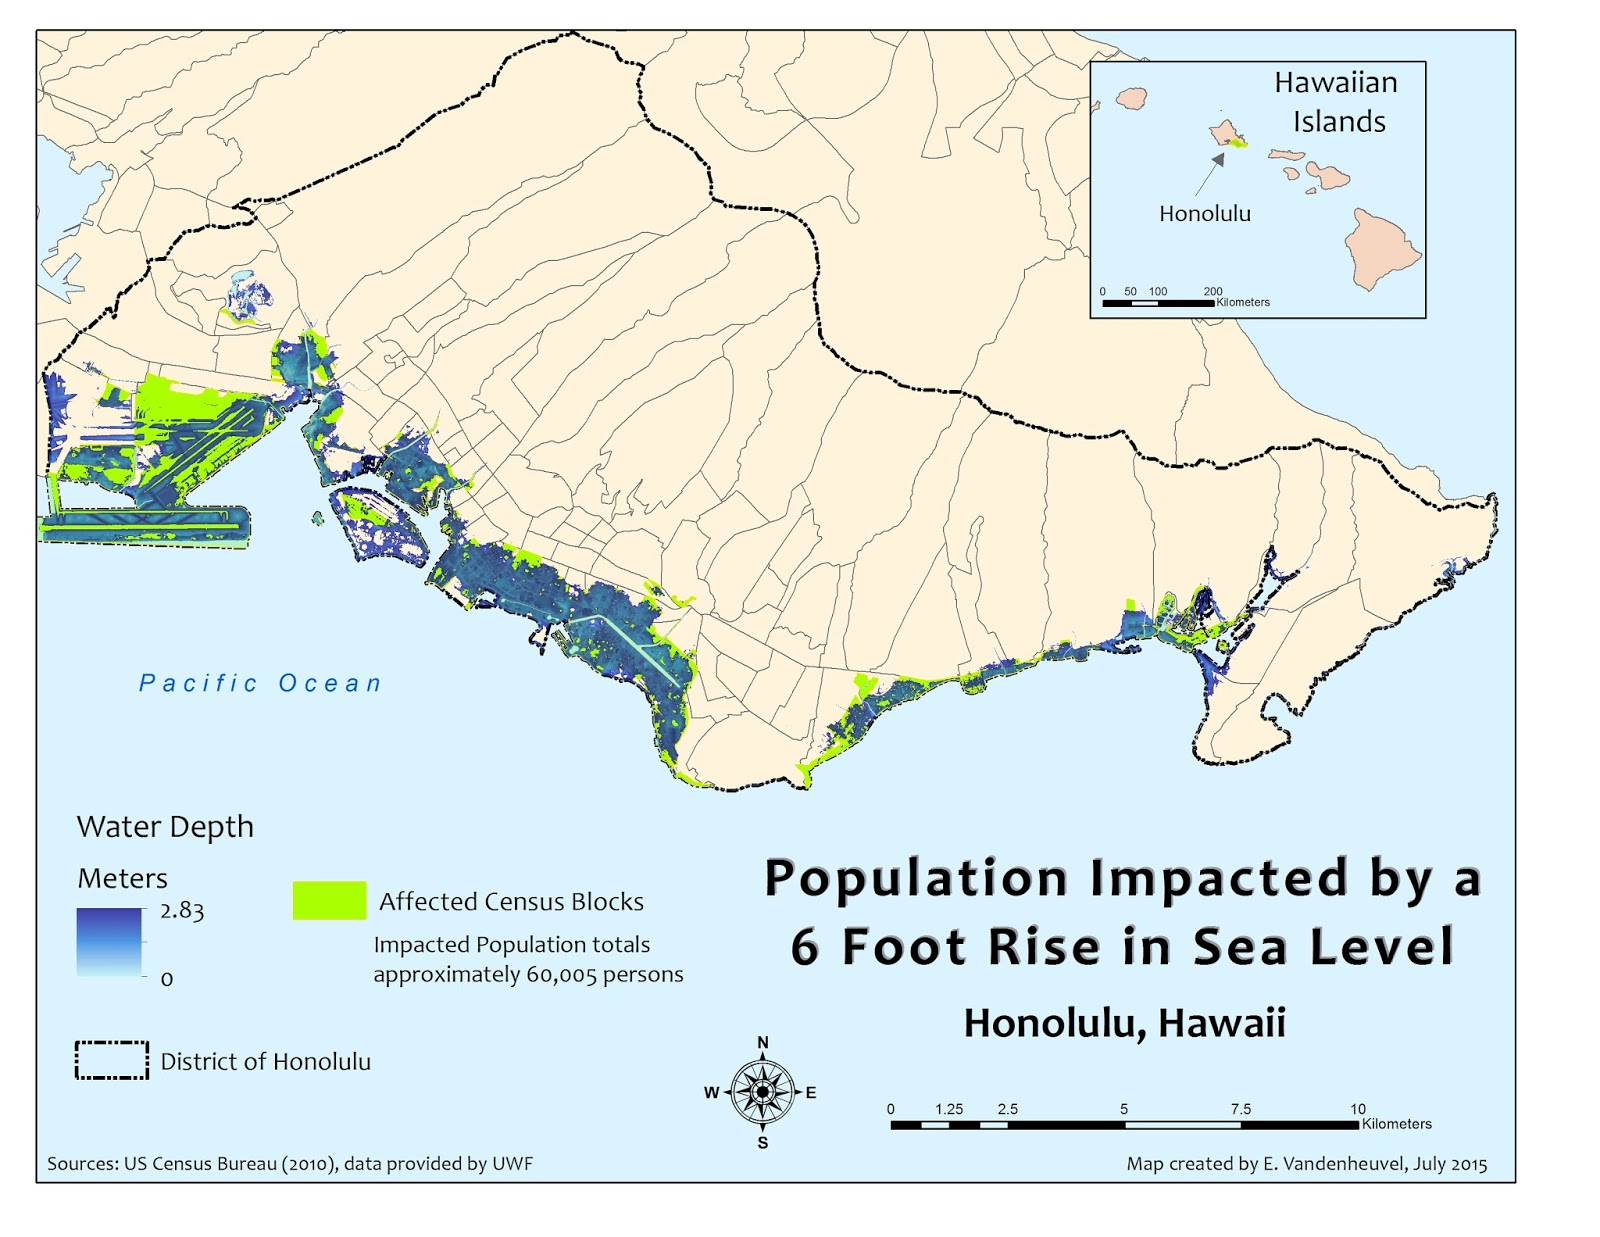 hawaii because of its isolated location in the warm tropical waters of the south pacific is especially vulnerable to water related catastrophes